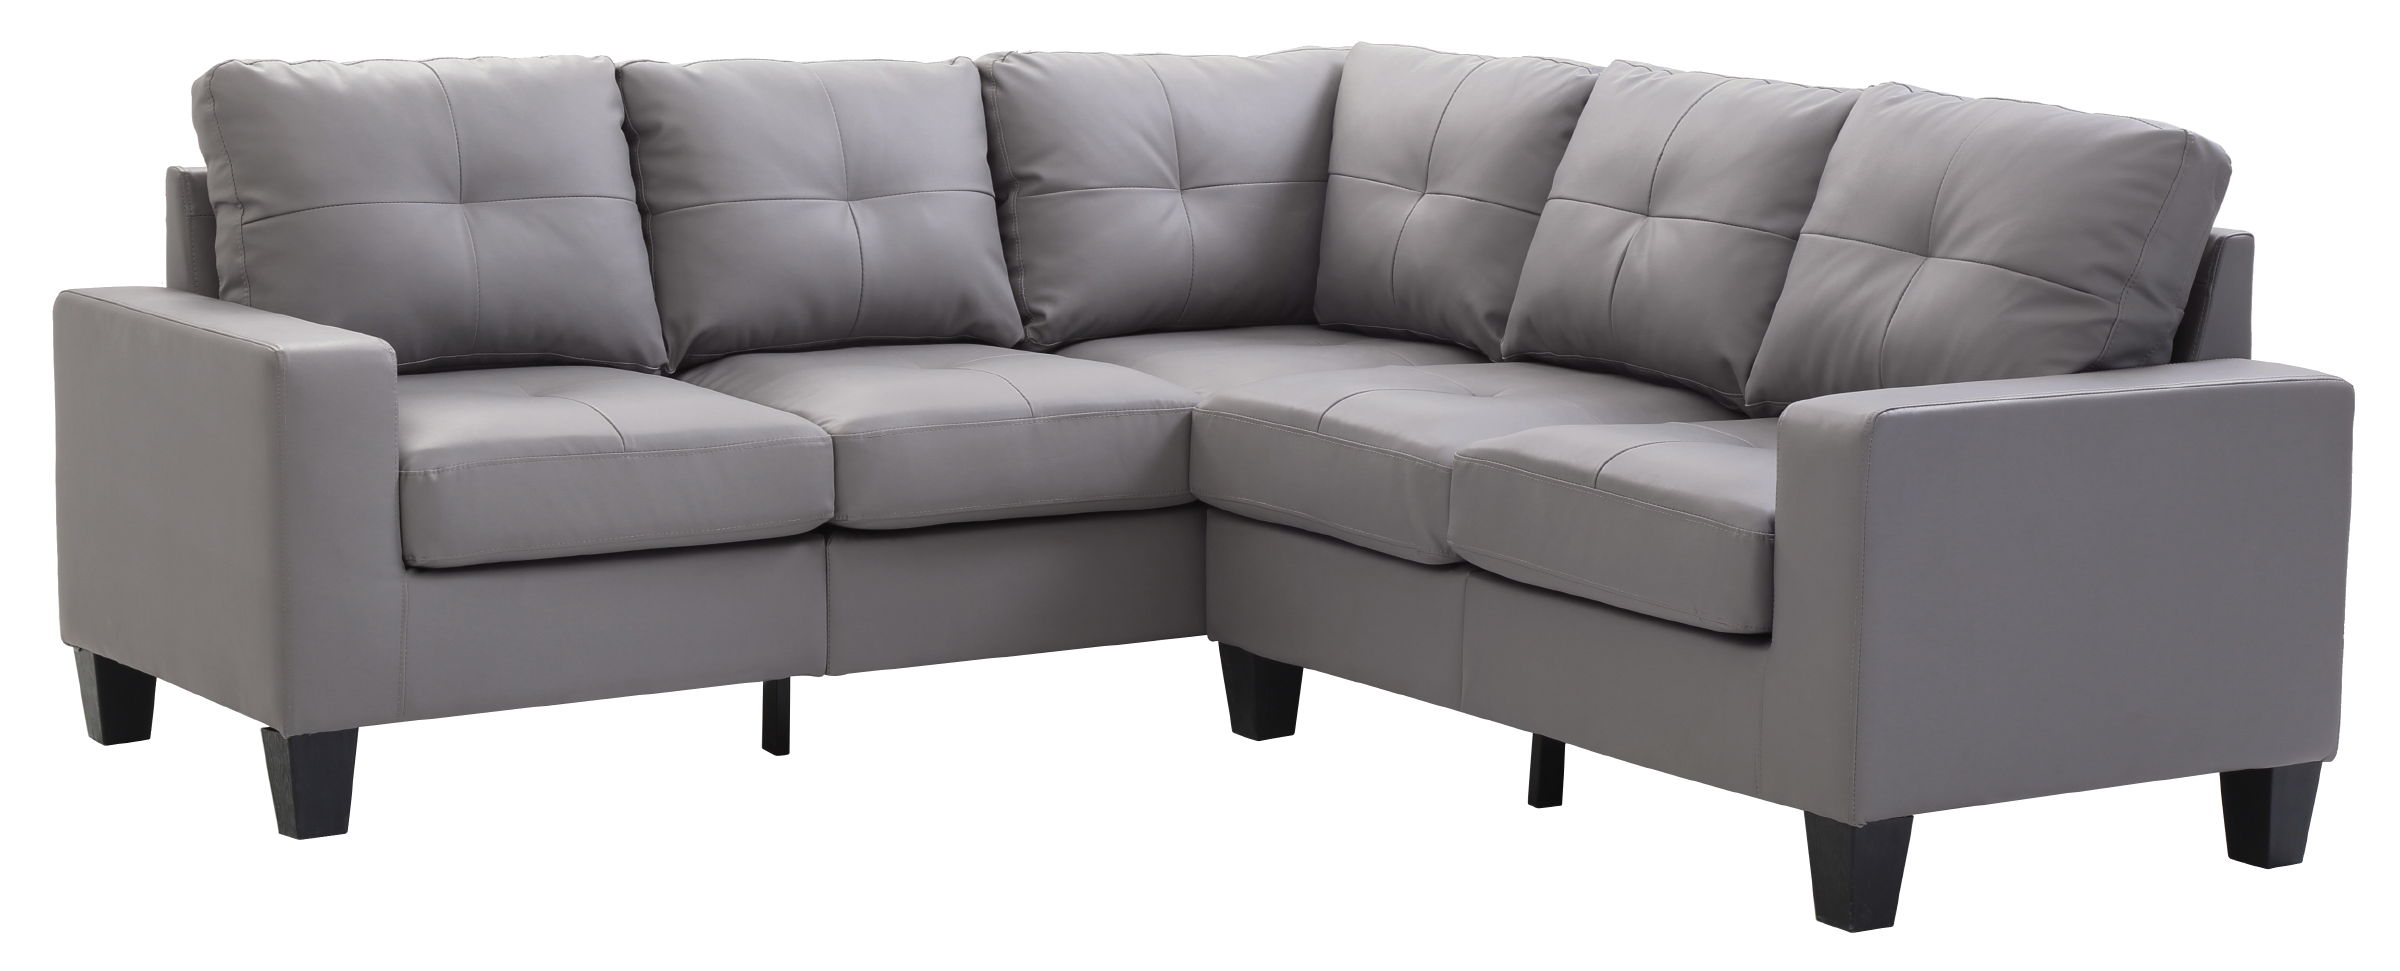 Glory Furniture Newbury Casual Gray Faux Leather Sectional With Ottoman